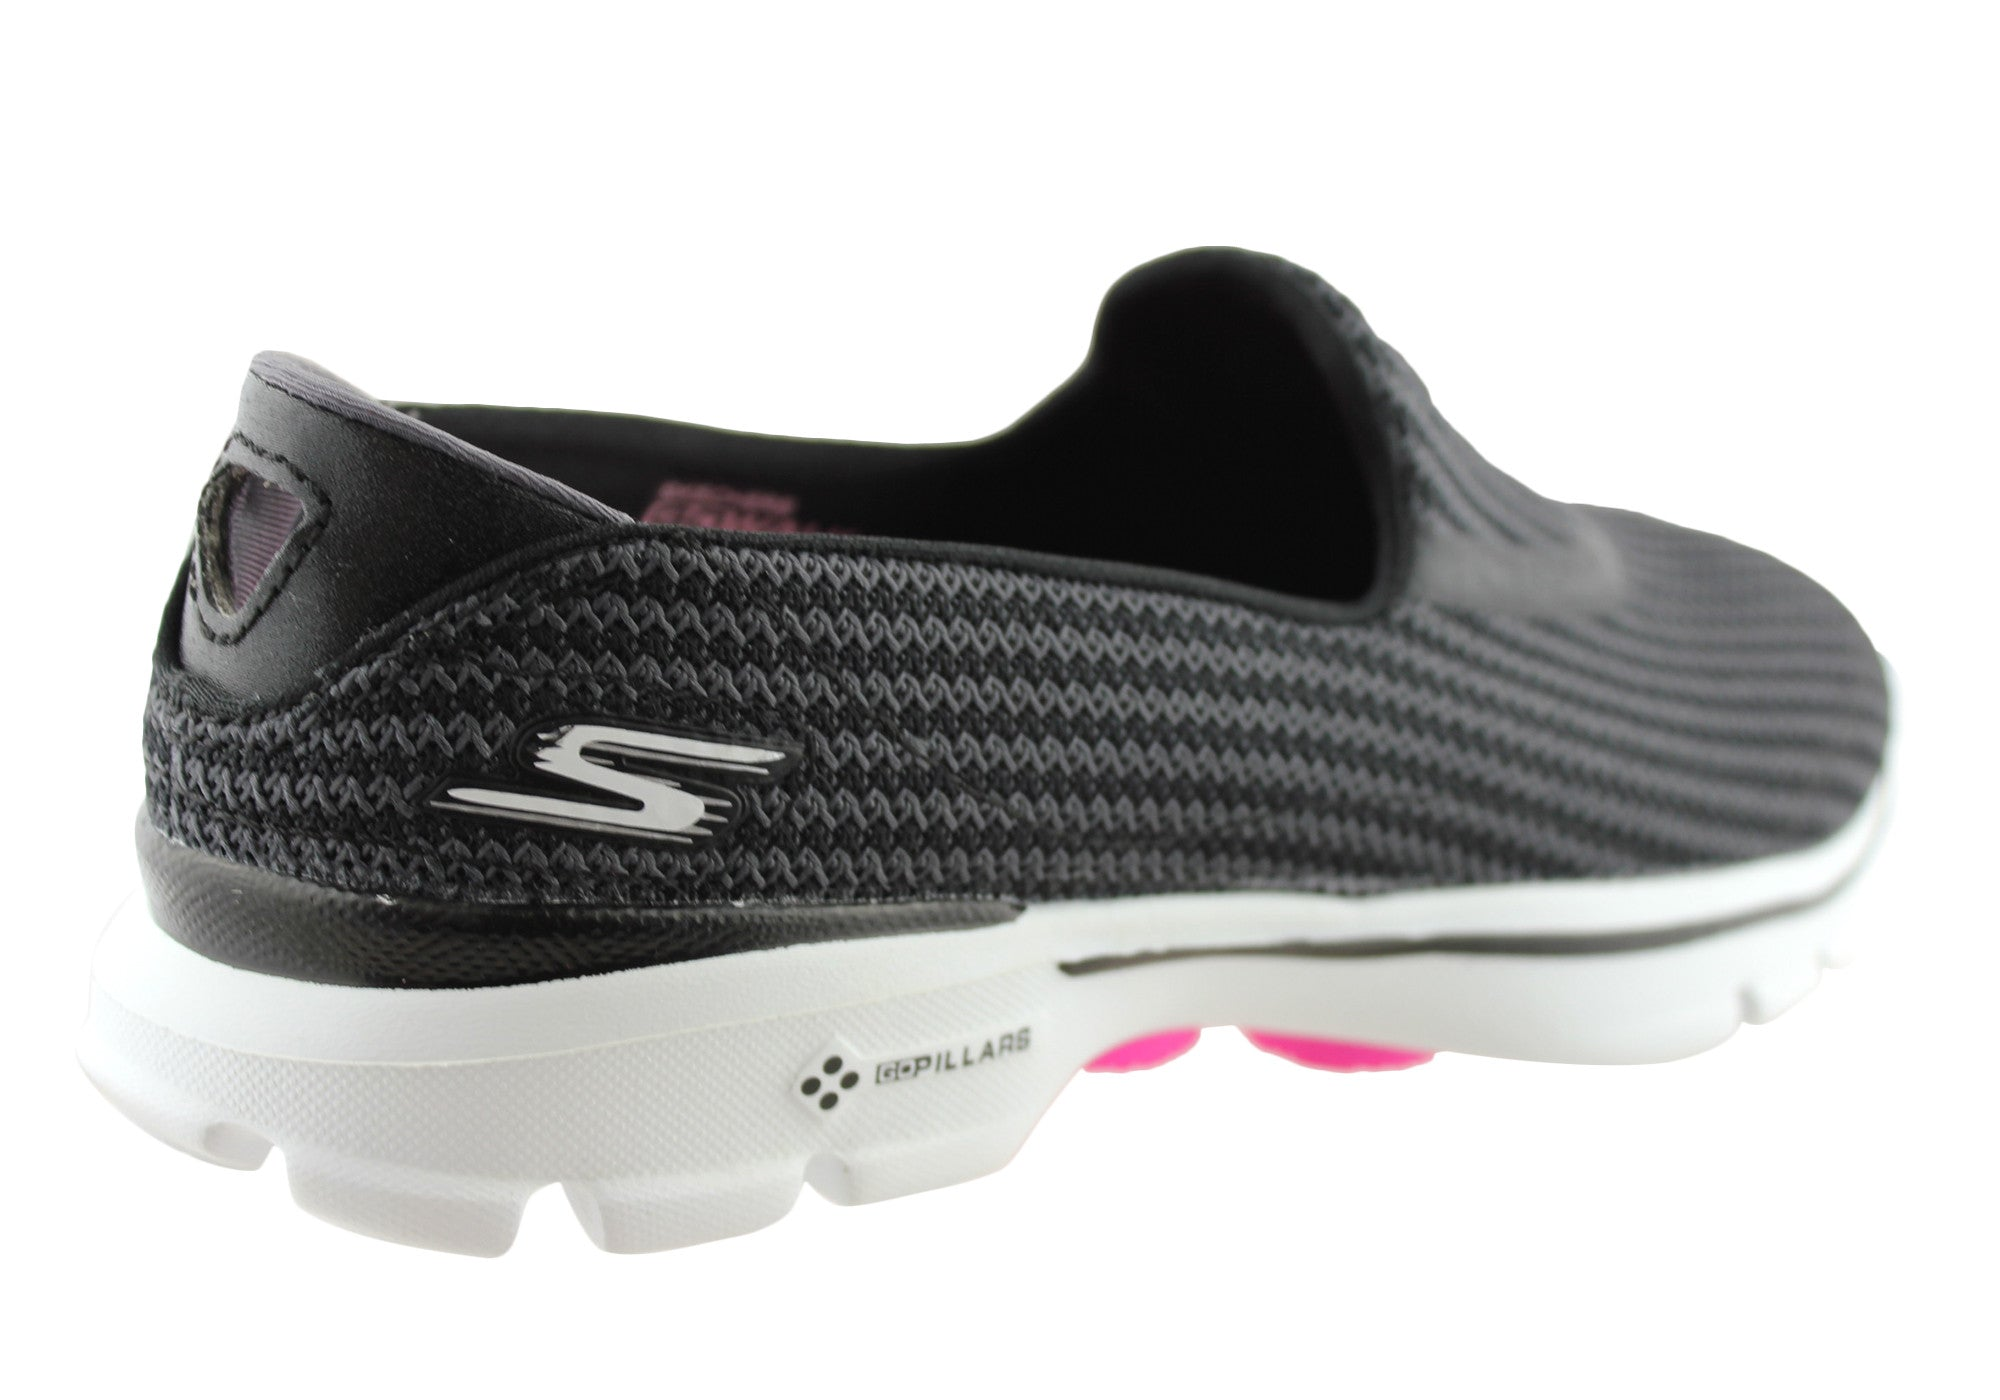 Skechers Shoes For Sale In South Africa